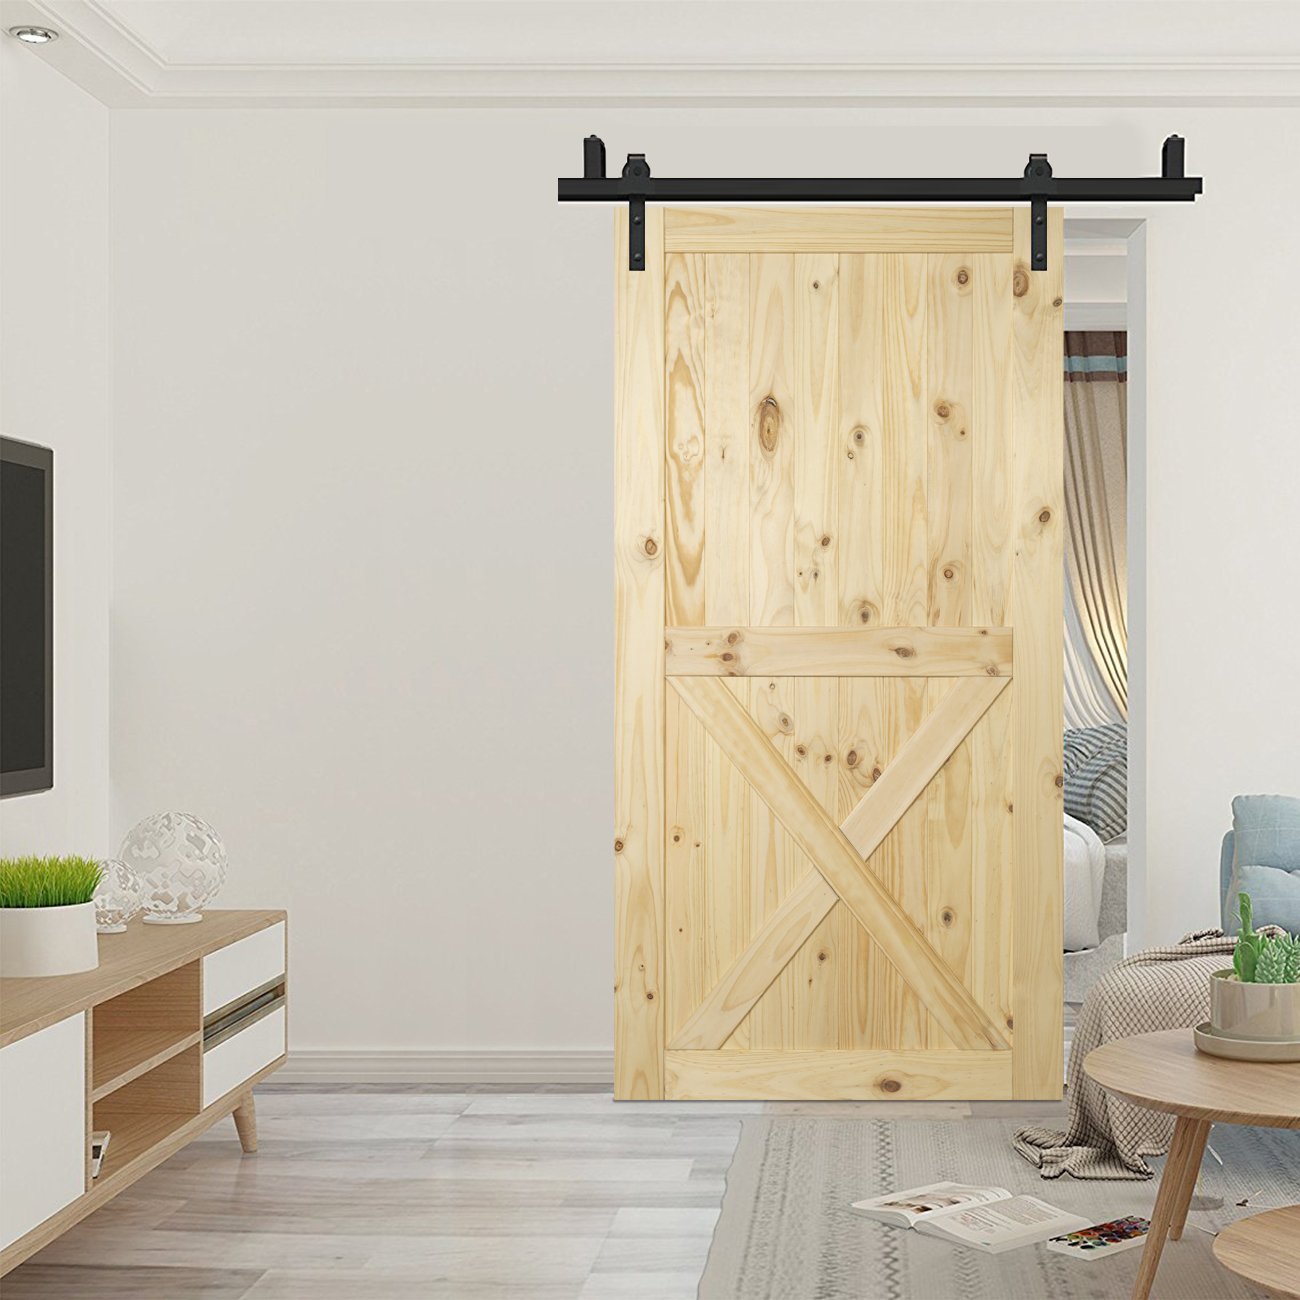 BELLEZE Lower X Sliding Barn Door (7ft x 3.5ft) Natural Wood Pine DIY Kit Unfinished Single Door Pre Drill 42'' x 84'' inches